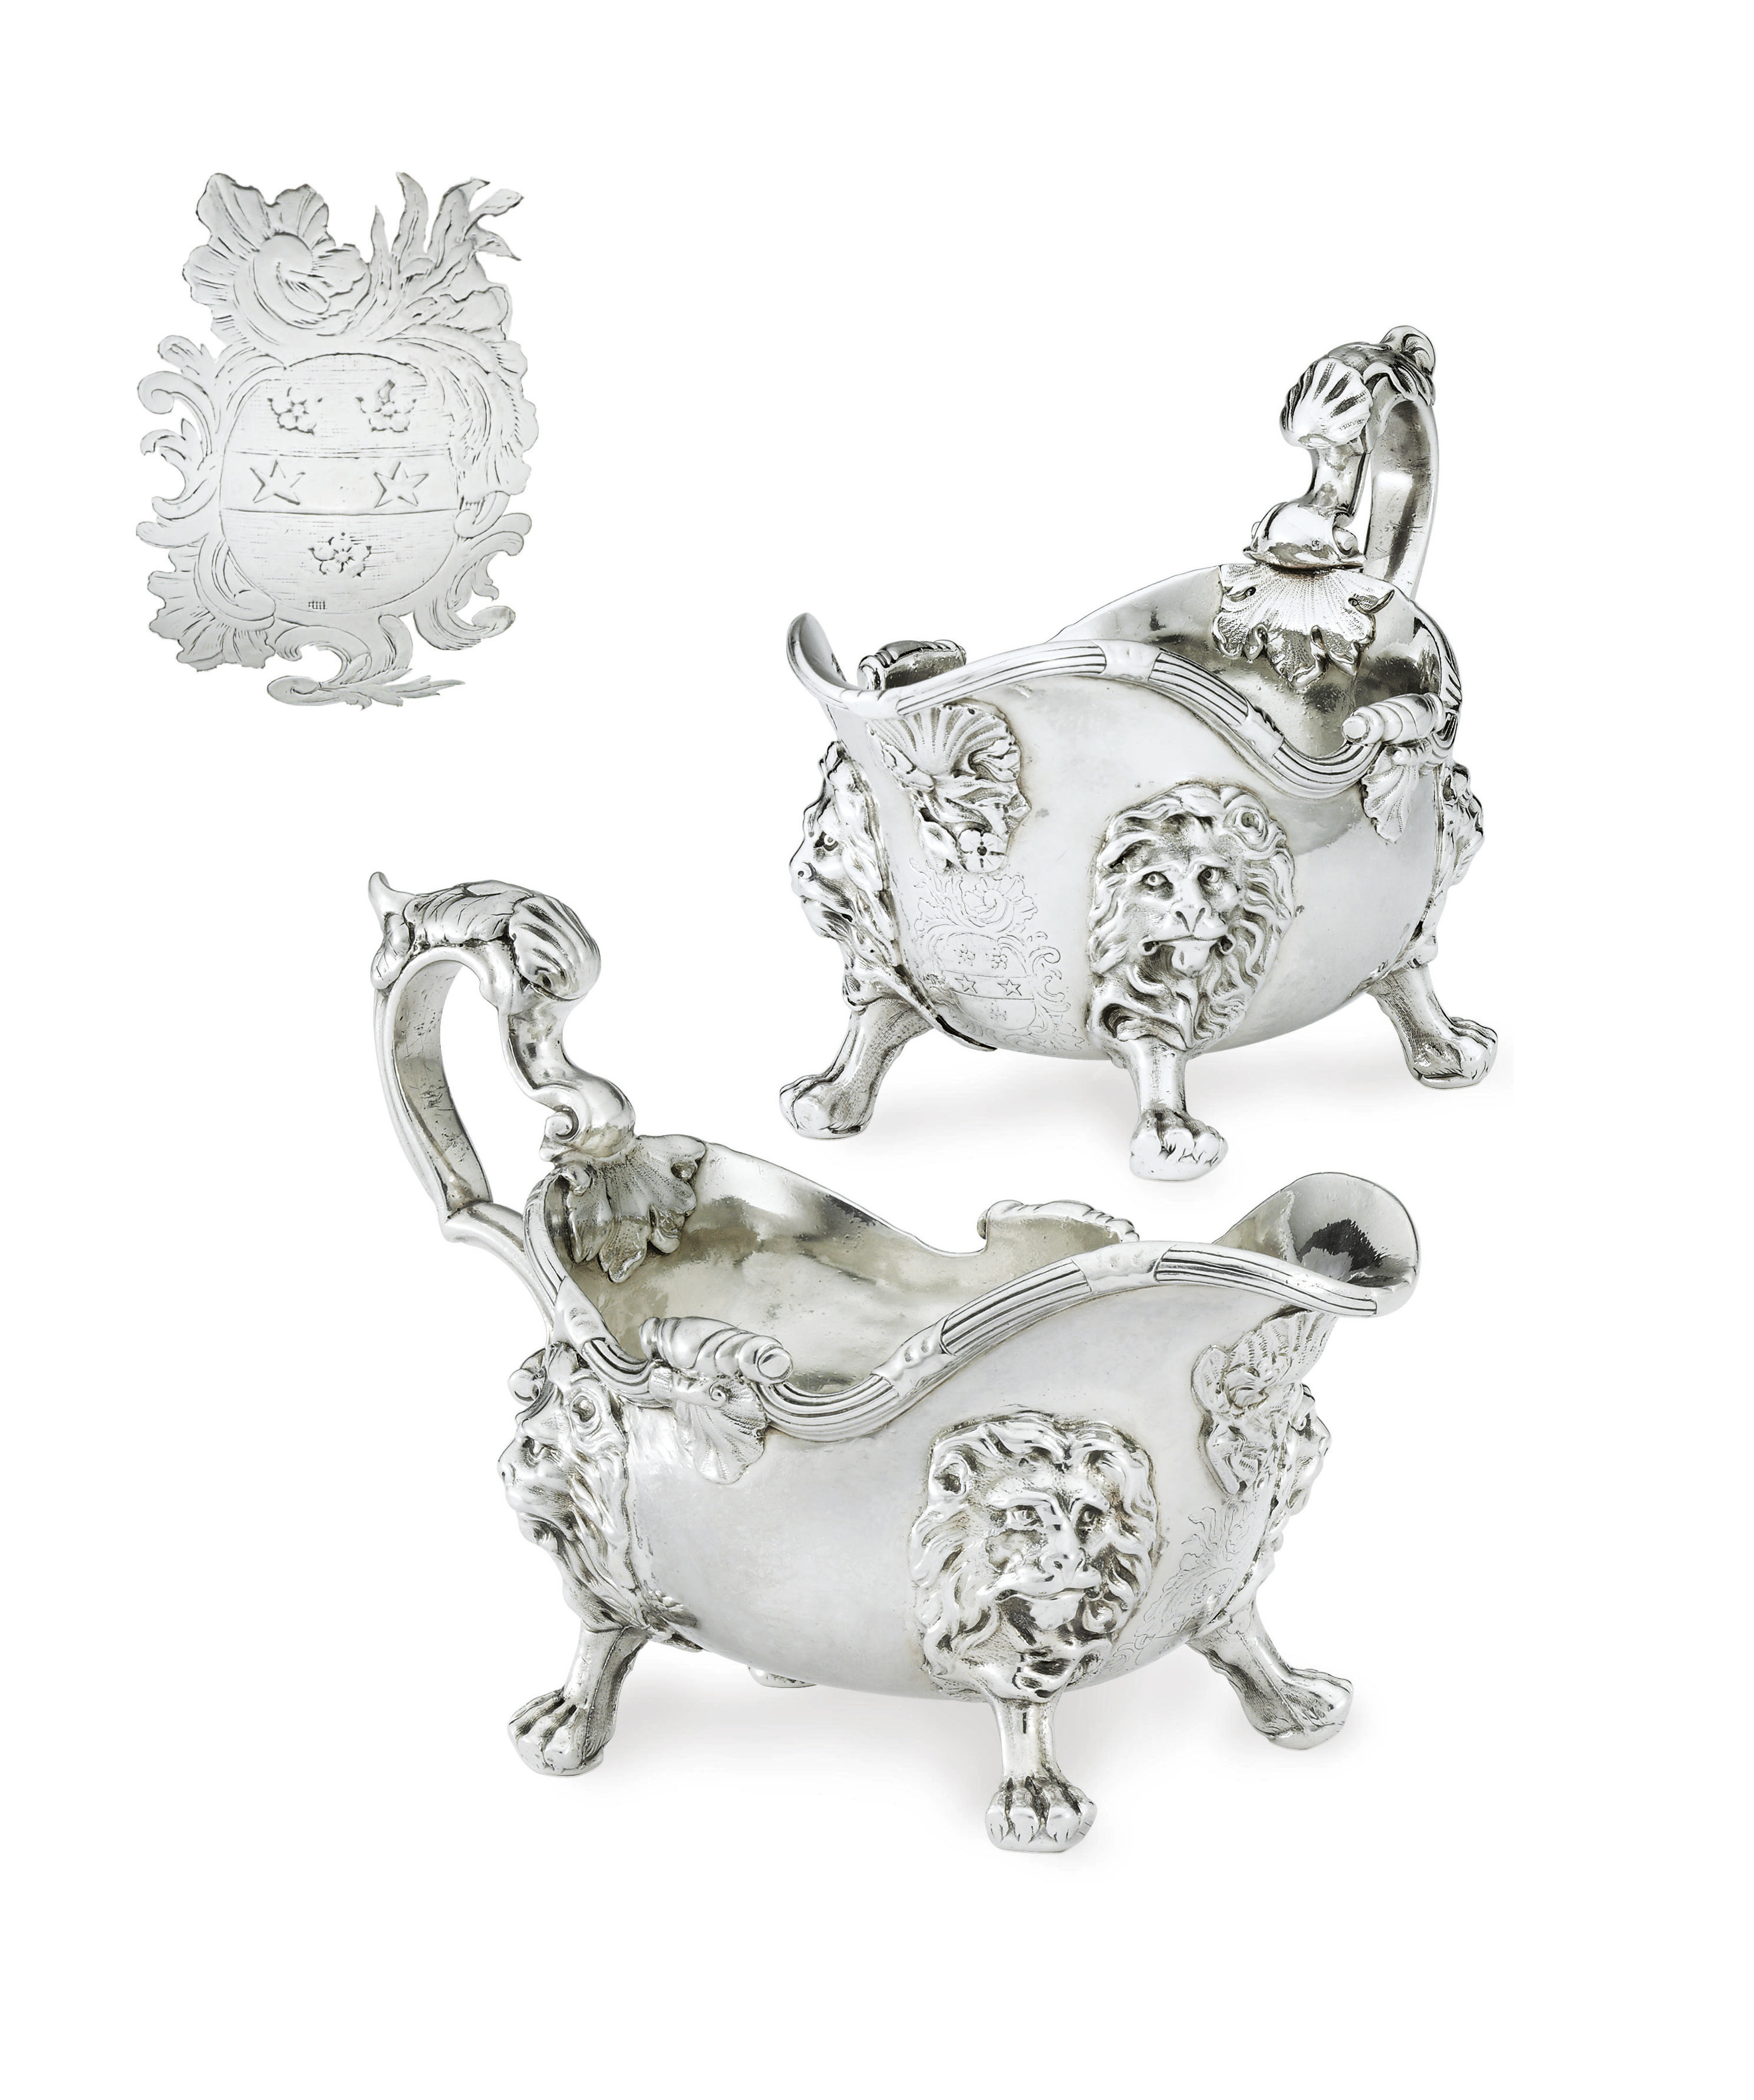 A FINE PAIR OF GEORGE II SILVER SAUCEBOATS